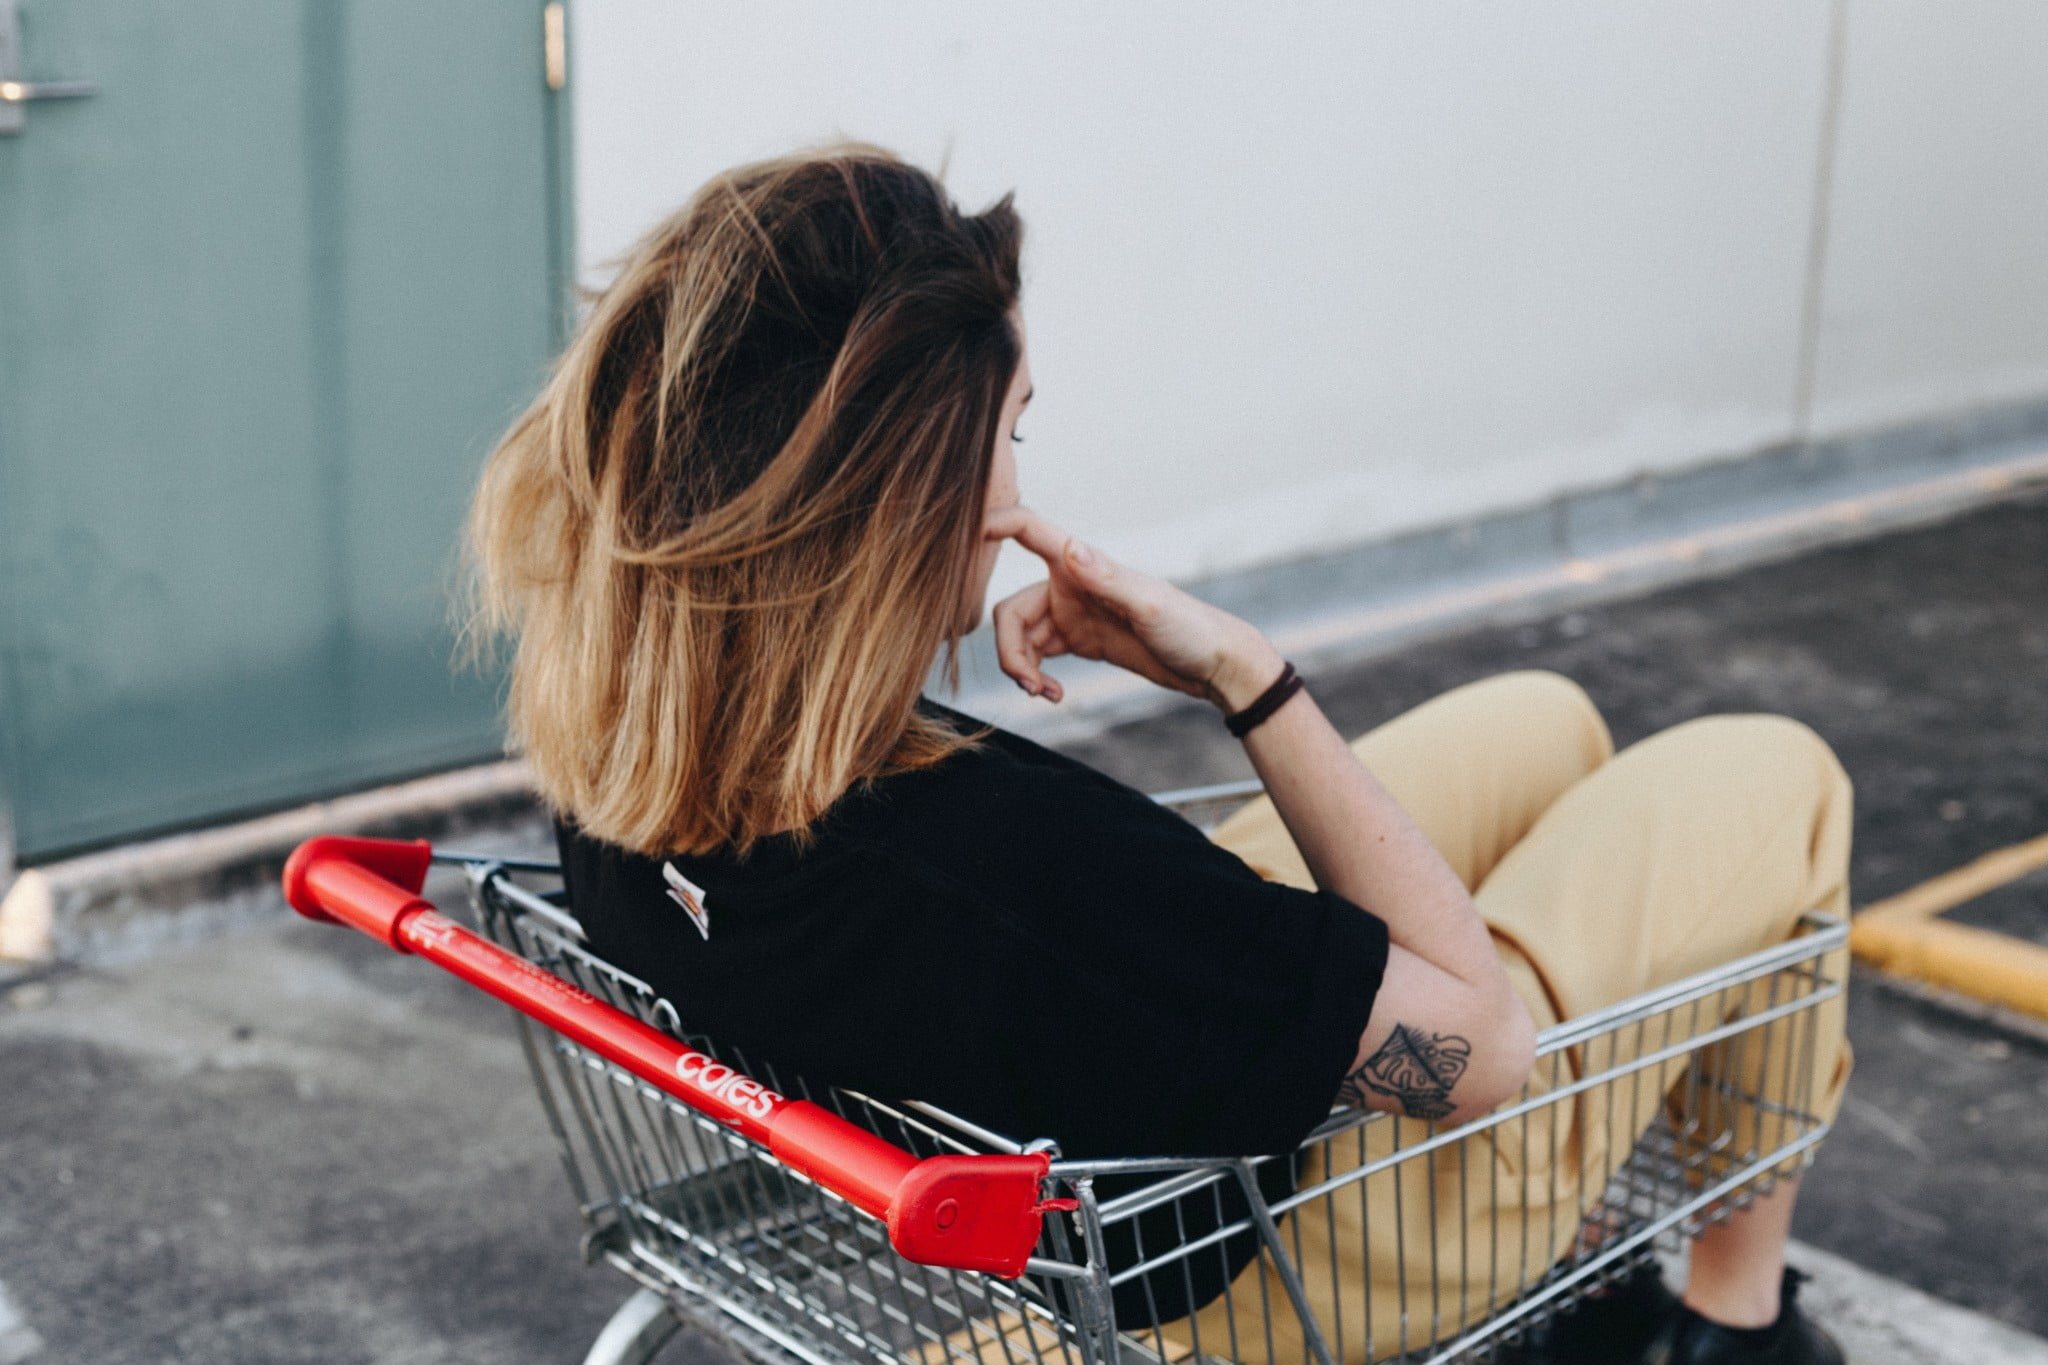 A photo of a girl sitting in a shopping cart